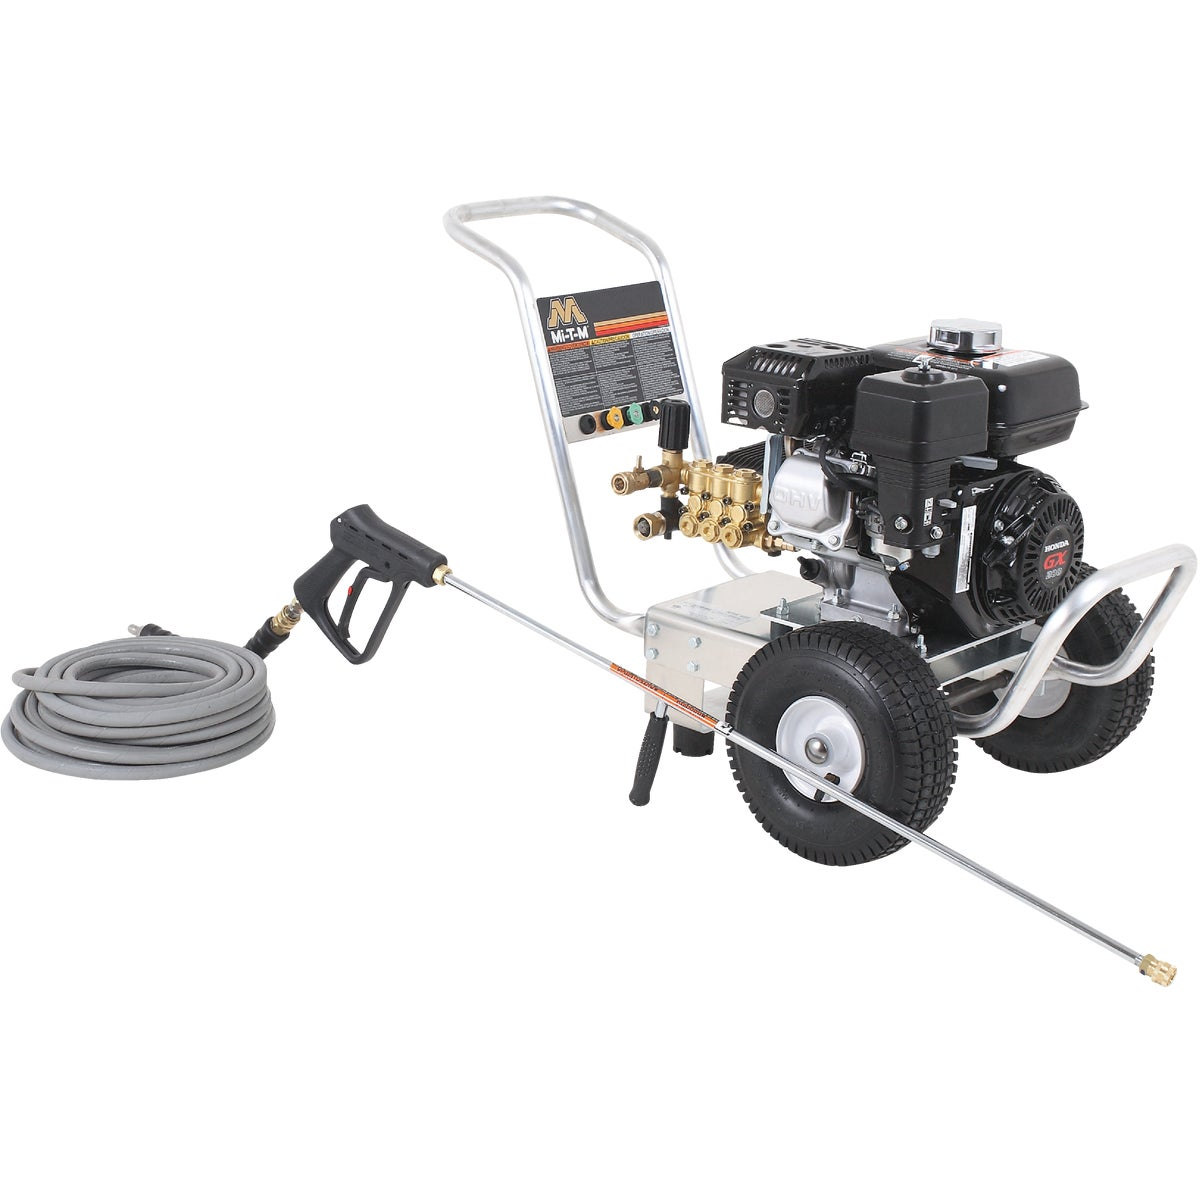 2700PSI PRESSURE WASHER